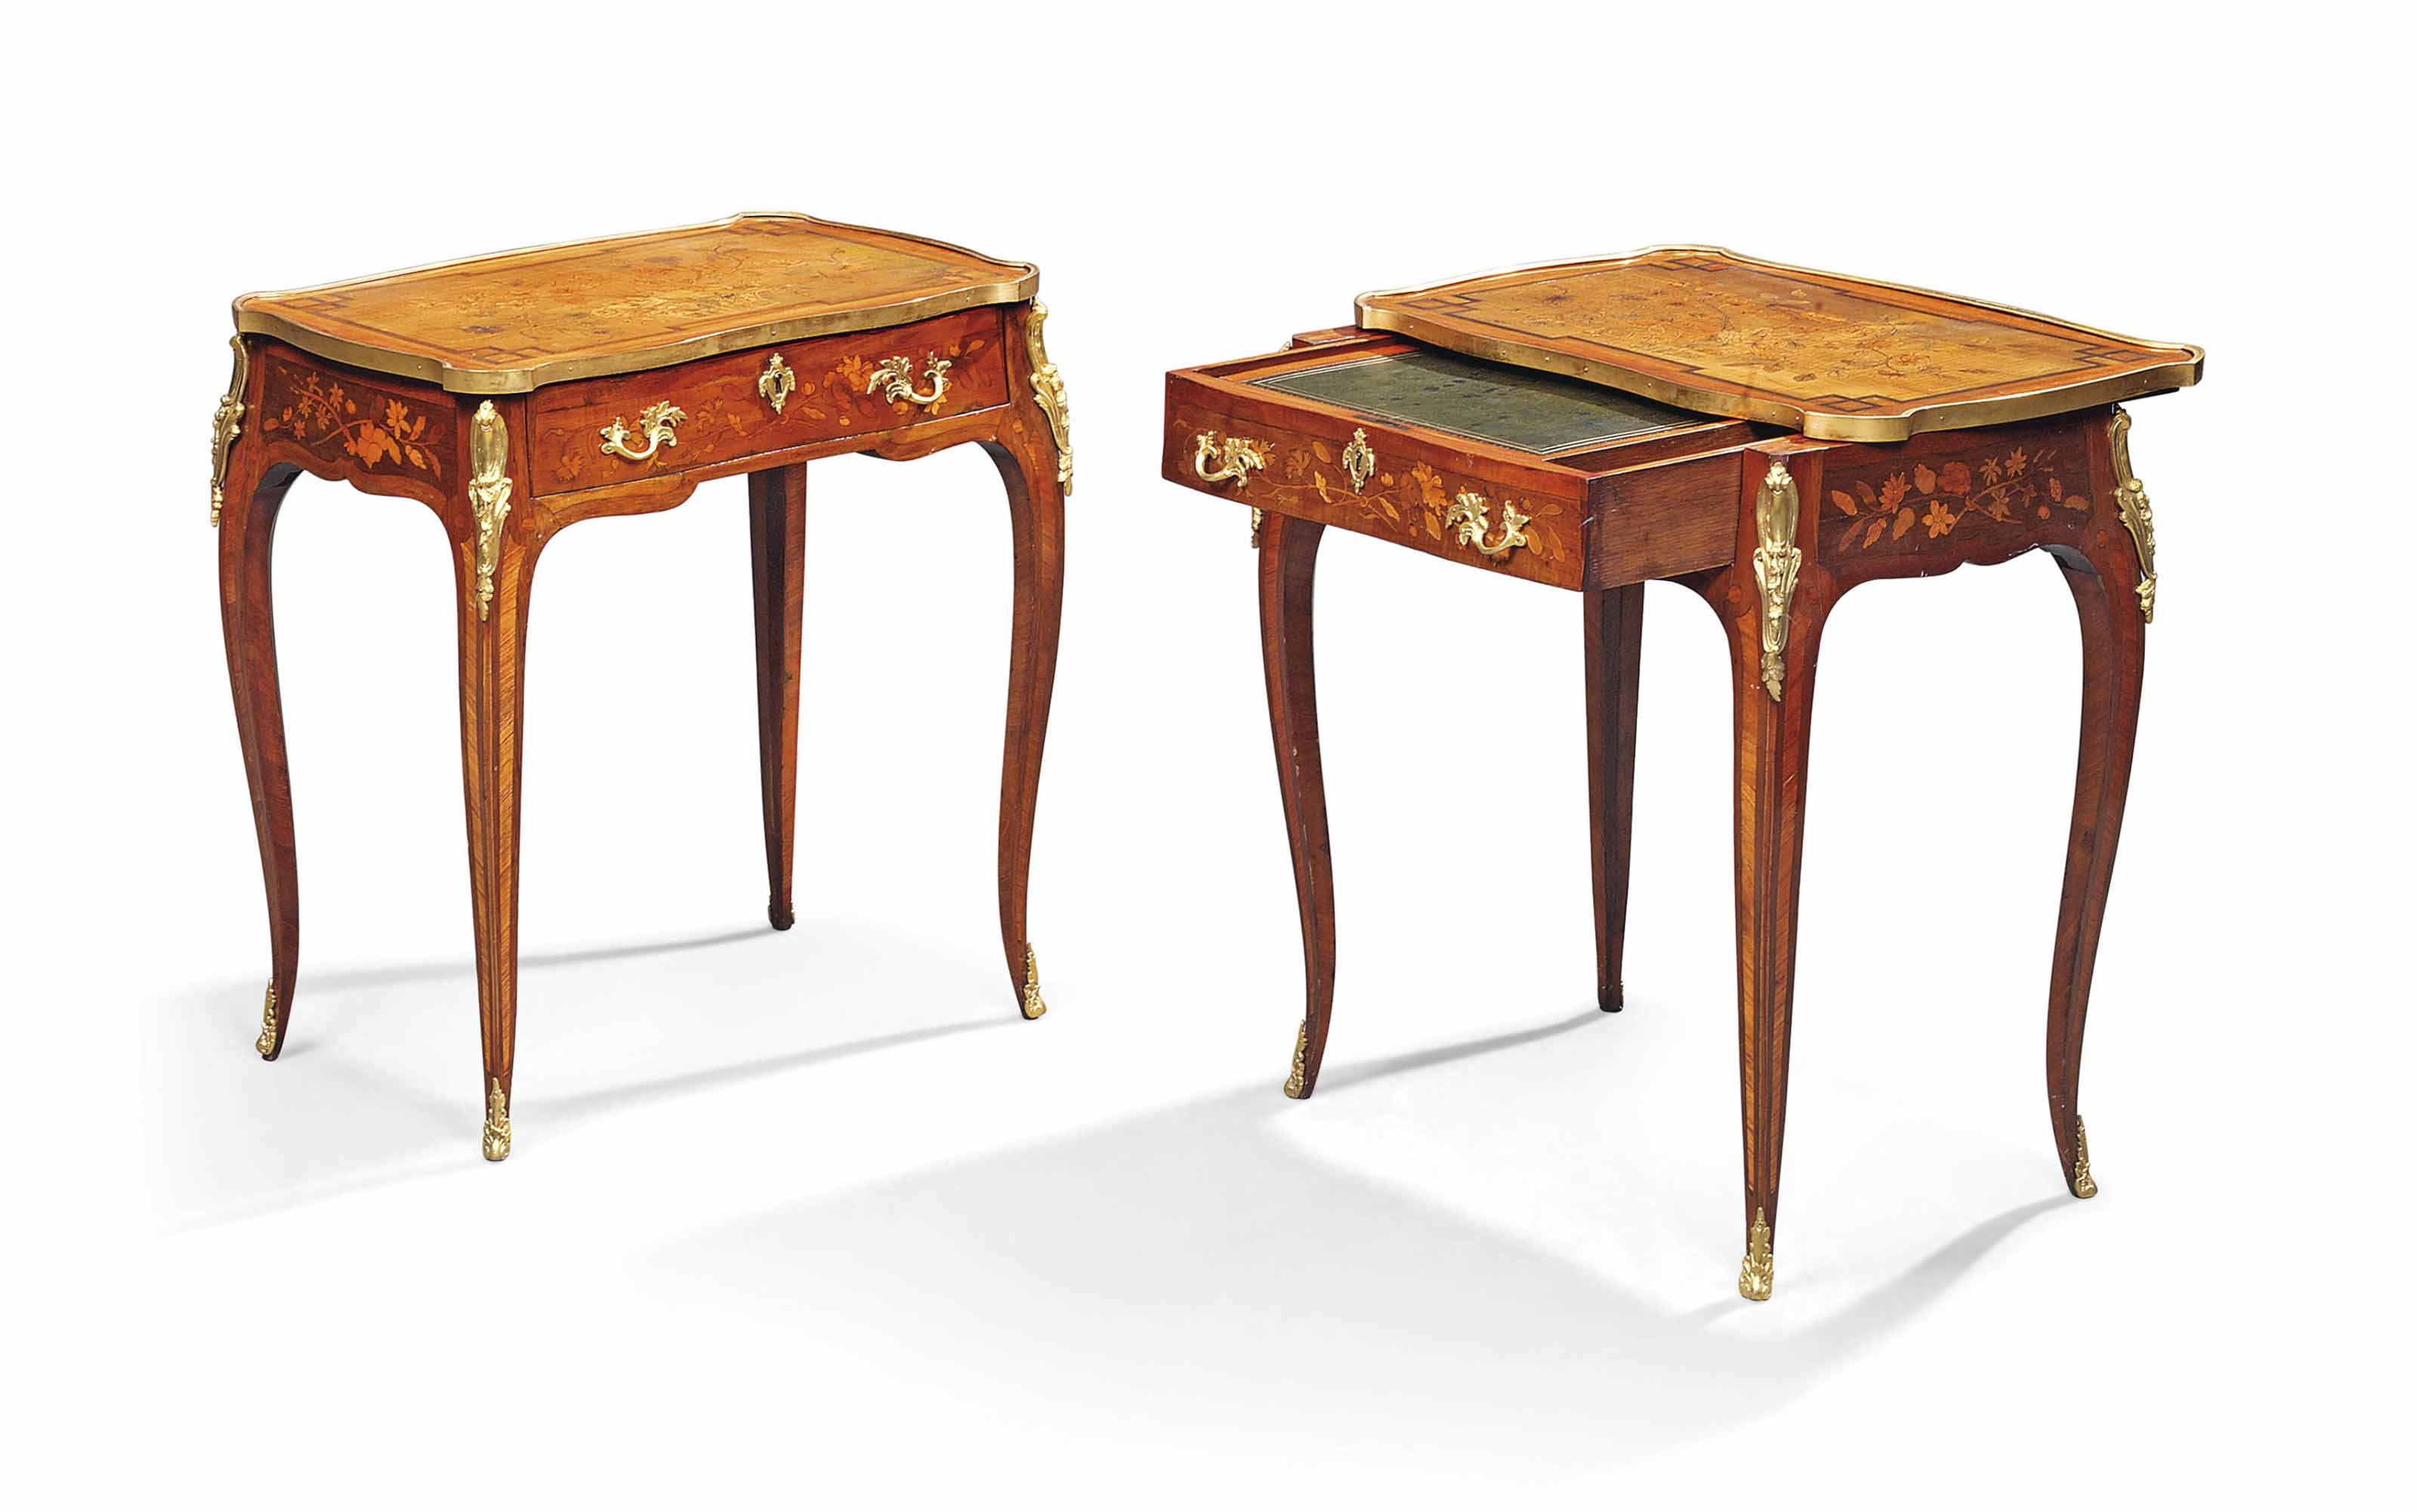 A NEAR PAIR OF ORMOLU-MOUNTED PADOUK, HAREWOOD AND MARQUETRY WRITING TABLES